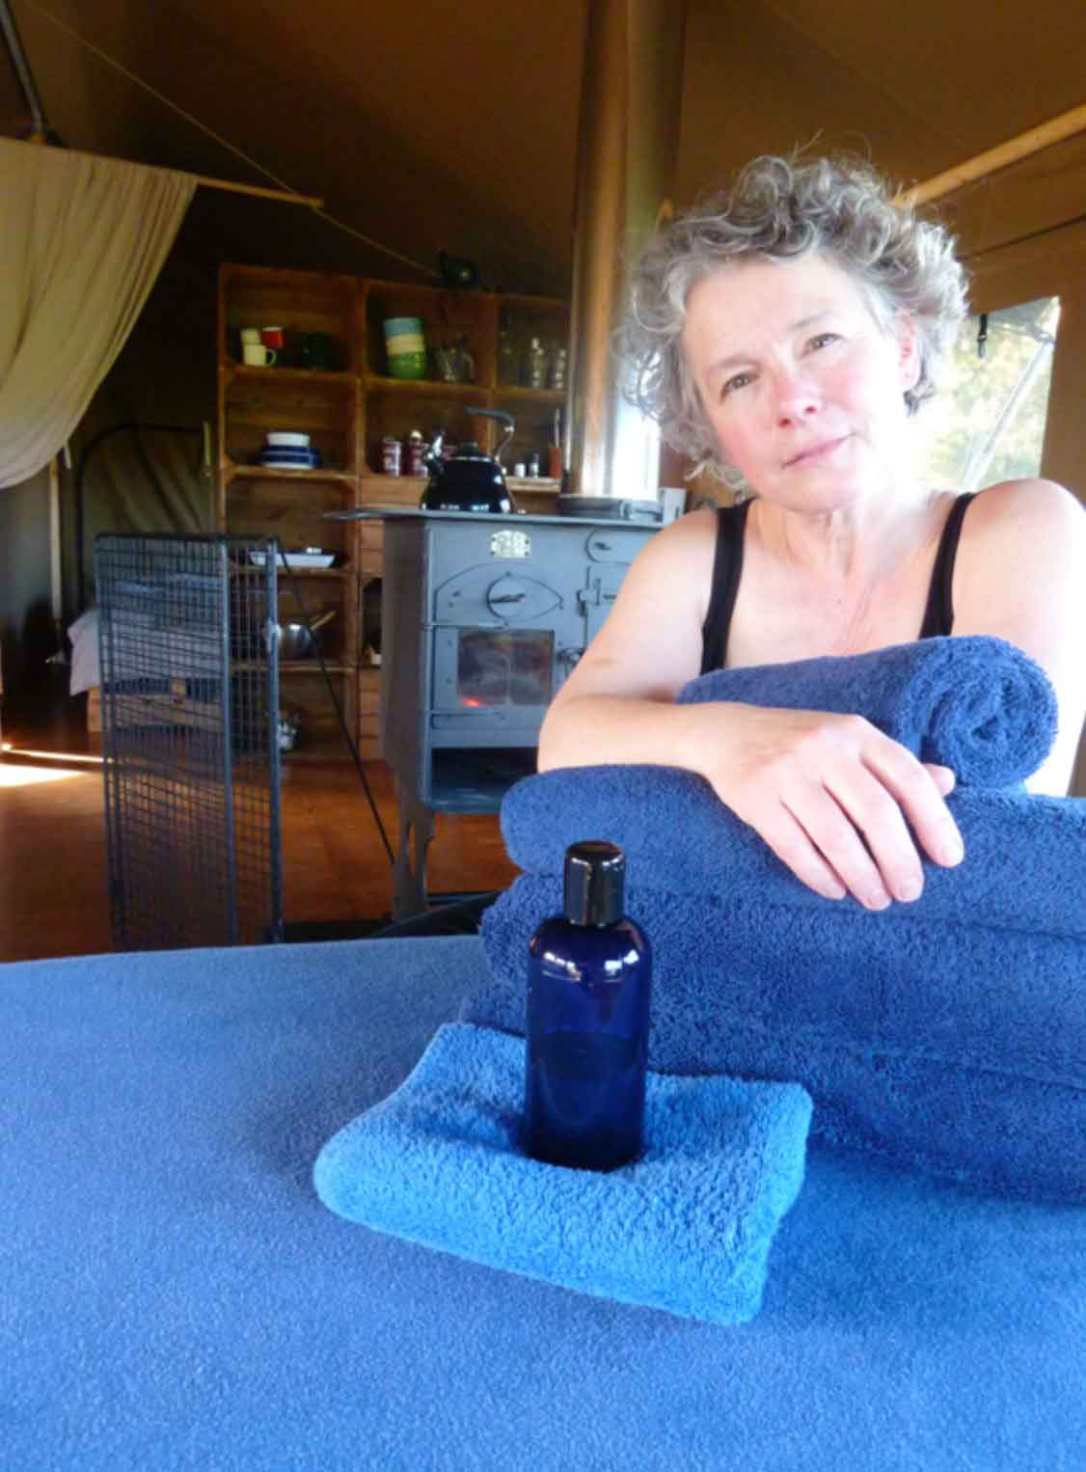 Anthea Bowen massage practitioner inside a safari tent at barefoot glamping Cornwall